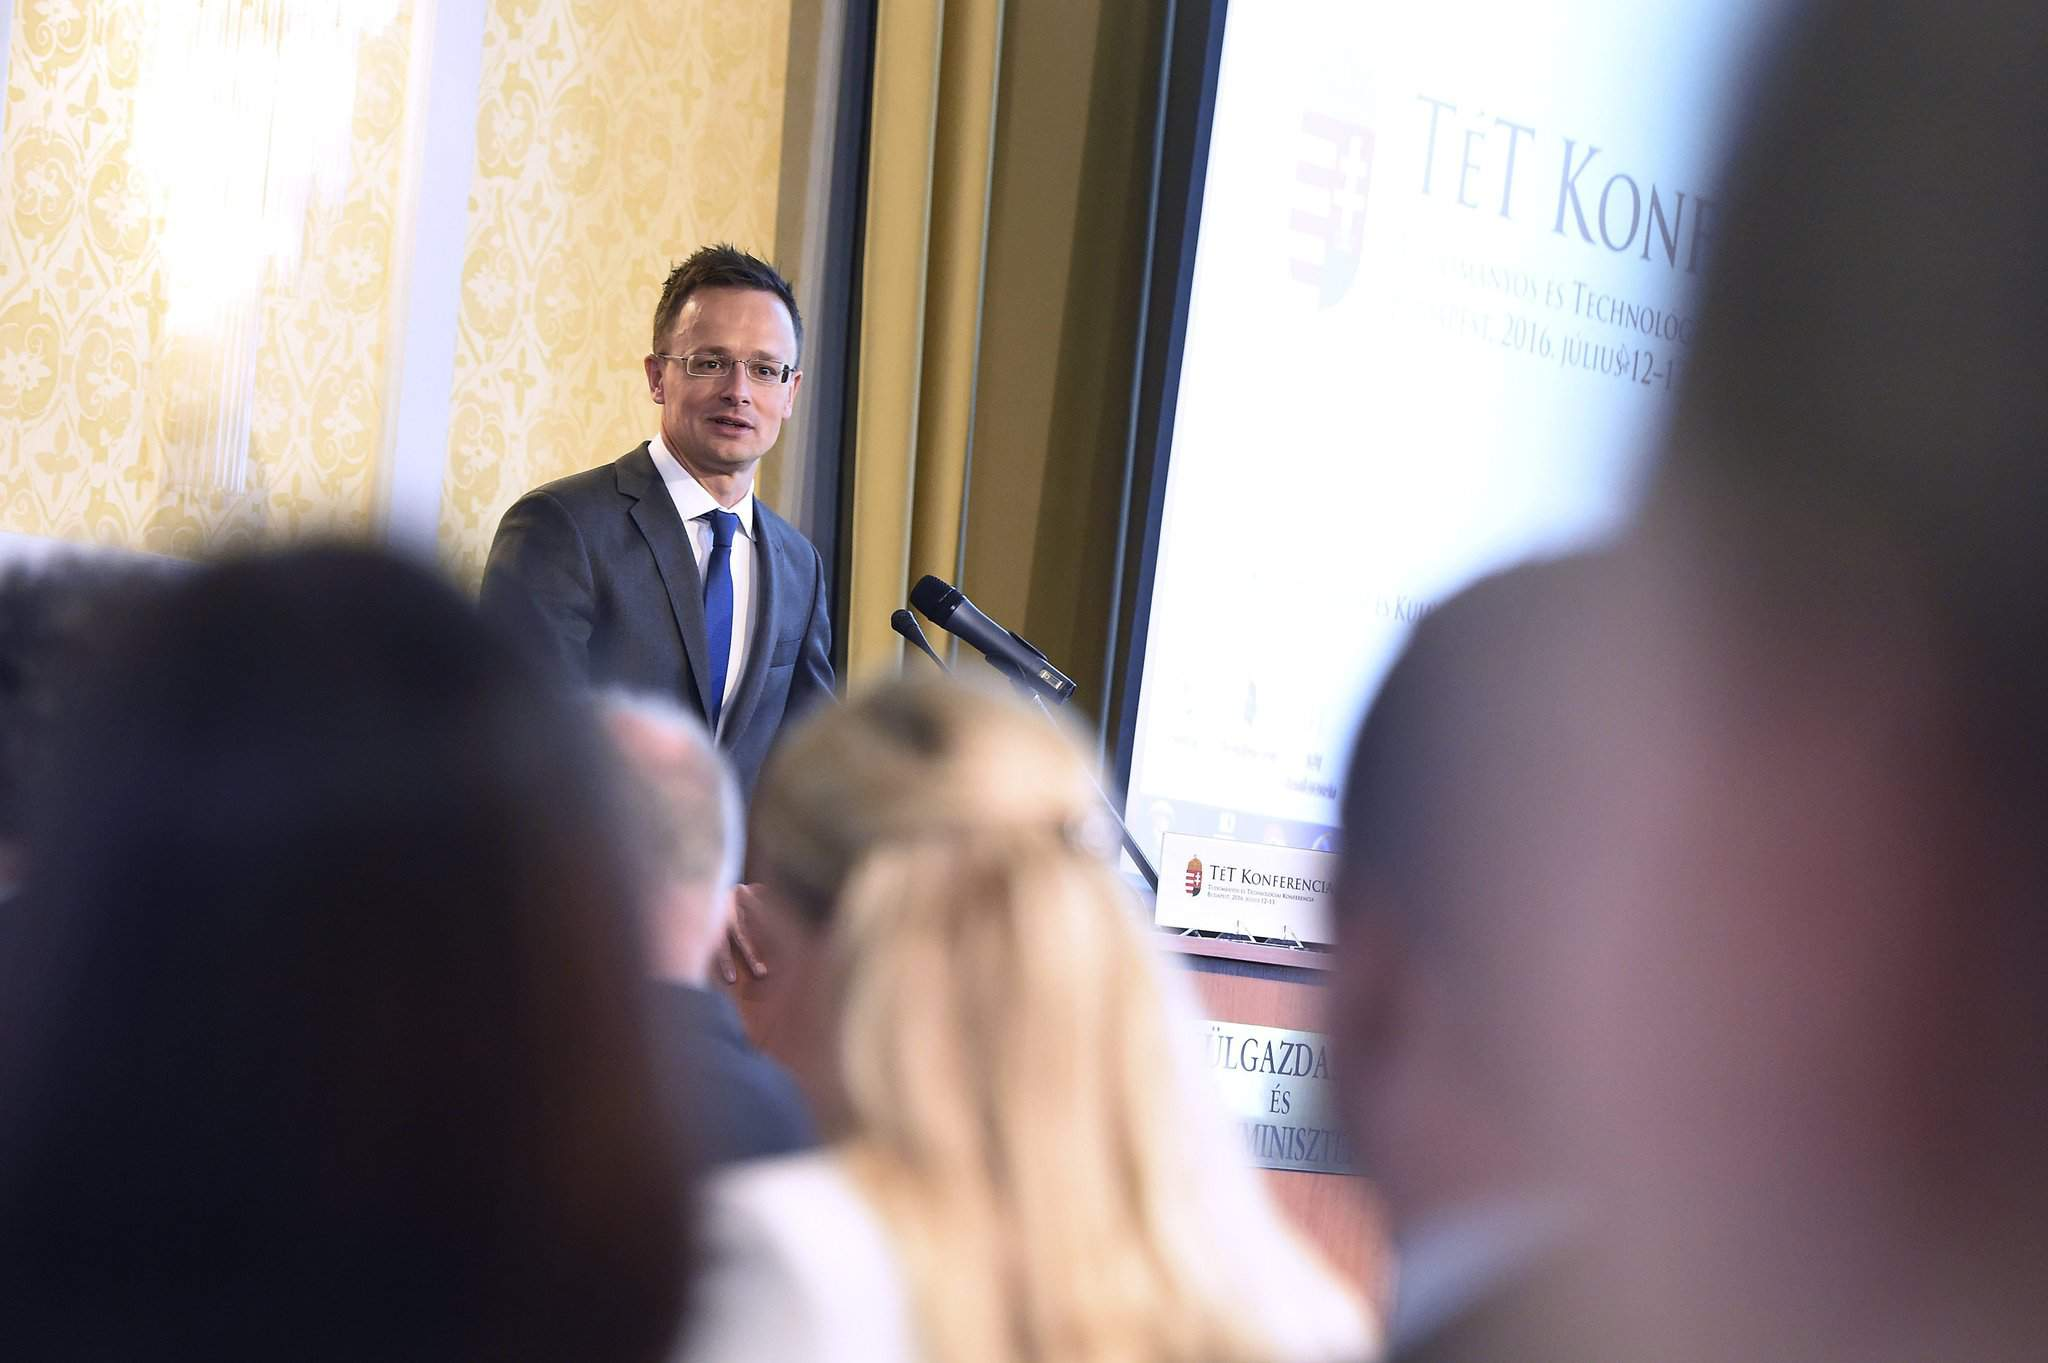 Szijjártó opens science-technology conference at foreign ministry